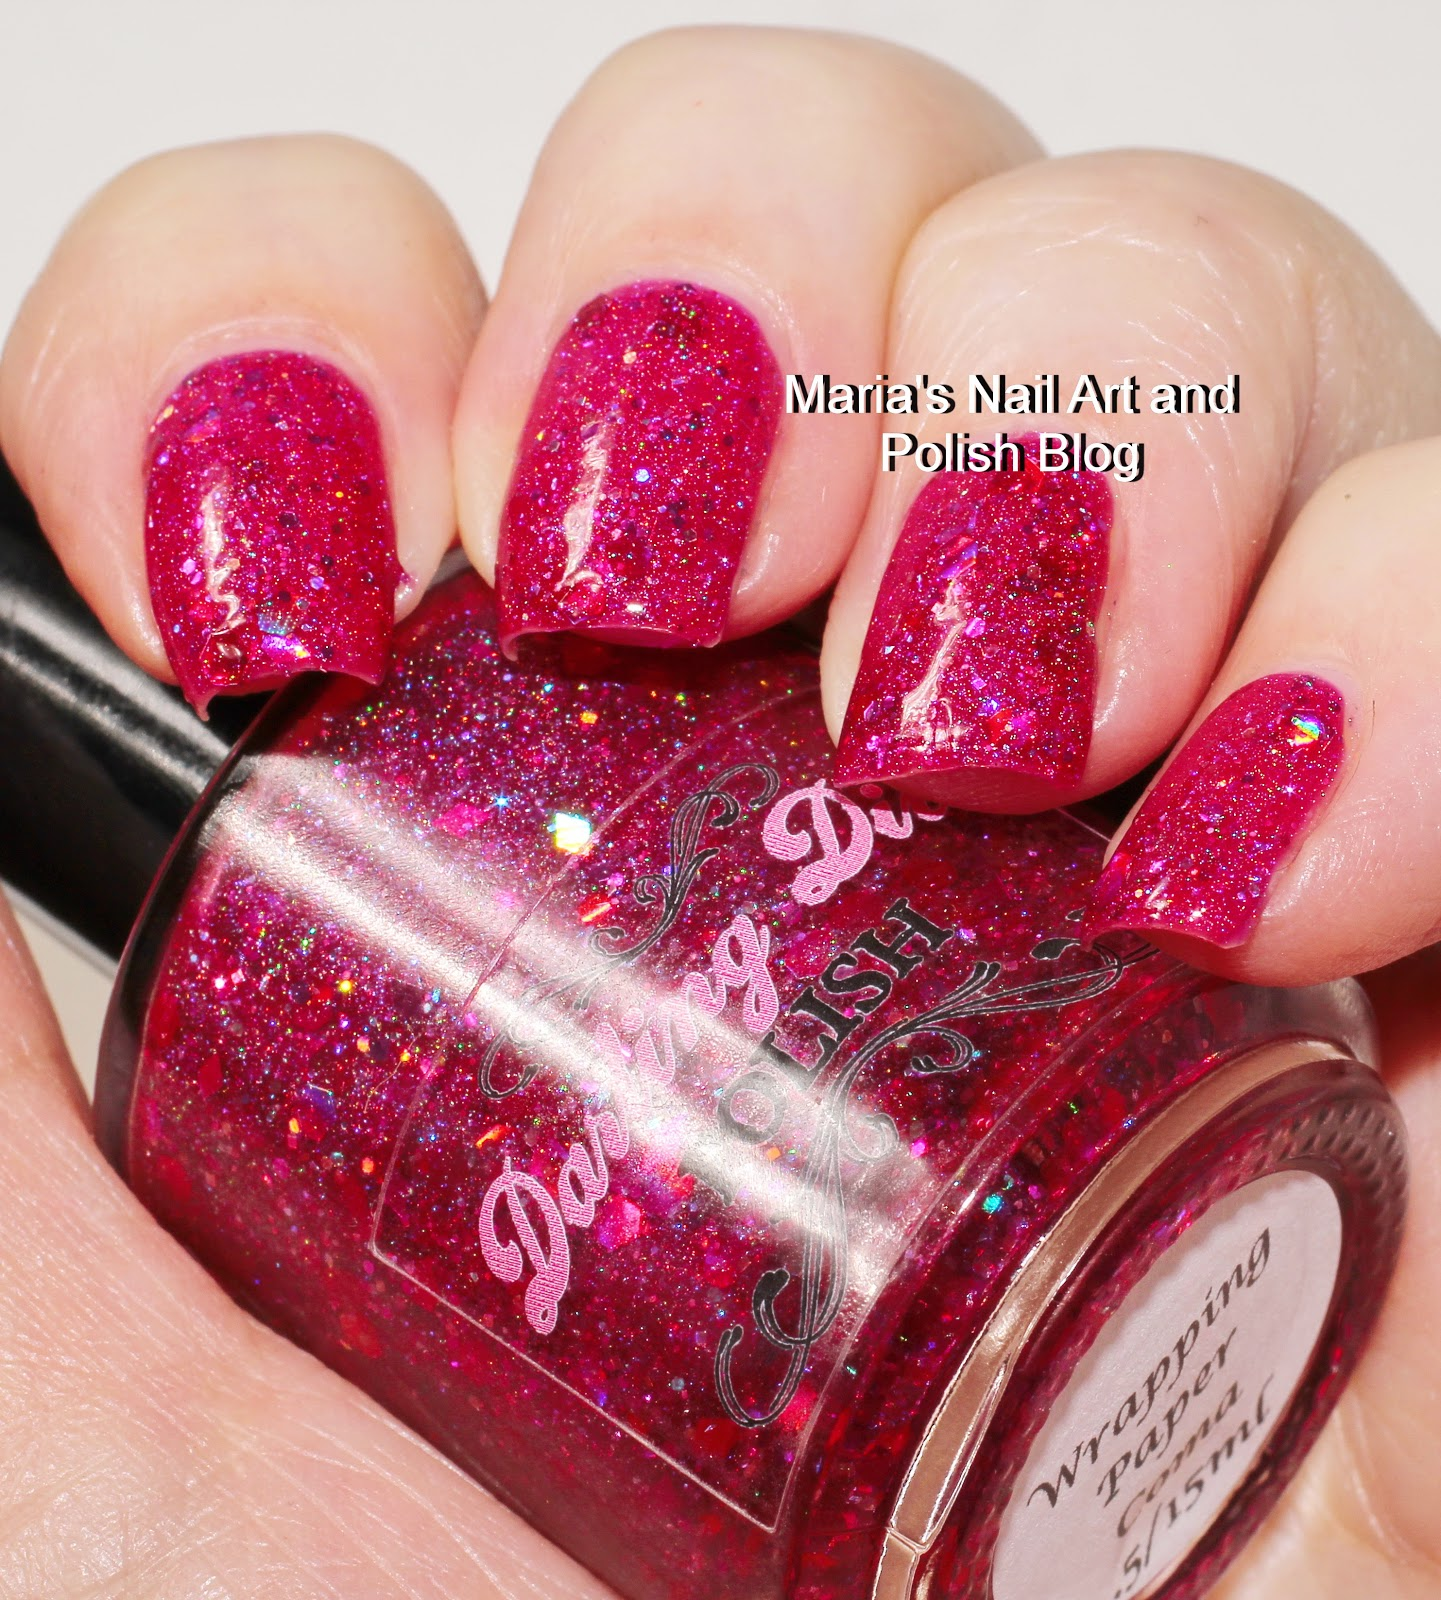 Marias Nail Art And Polish Blog Flushed With Stripes And: Marias Nail Art And Polish Blog: Darling Diva Wrapping